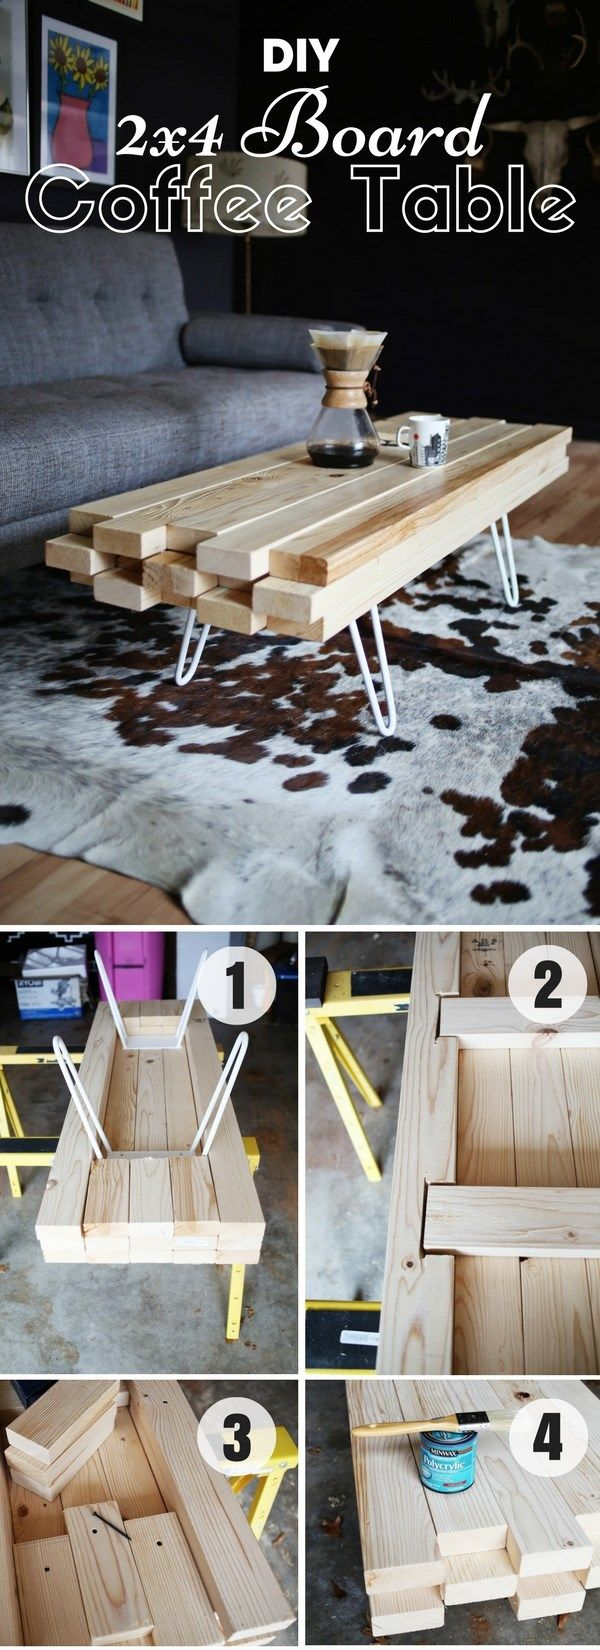 Check Out How To Make This Easy Diy 2x4 Board Coffee Table Industry Standard Design Coffee Table Coffee Table Alternatives Cheap Coffee Table [ 1650 x 600 Pixel ]